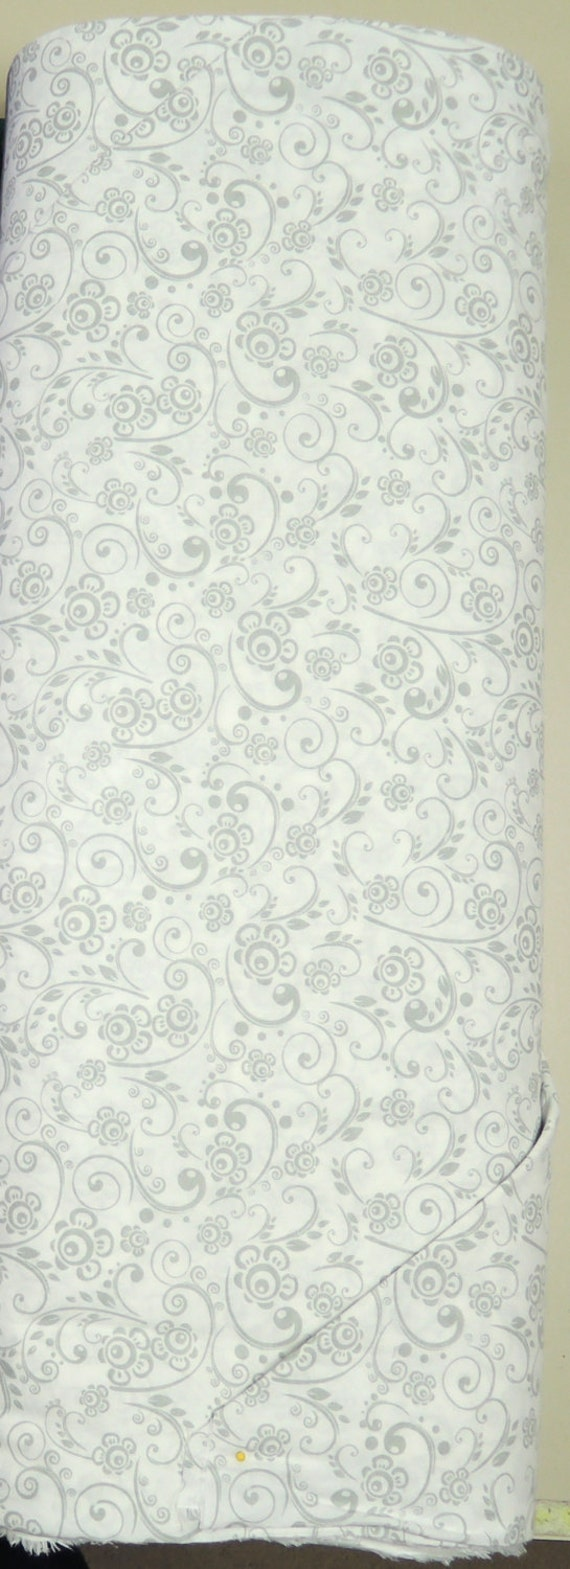 108 Quot White Amp Gray Flowers Vine Leaf Choice Quilt Backing